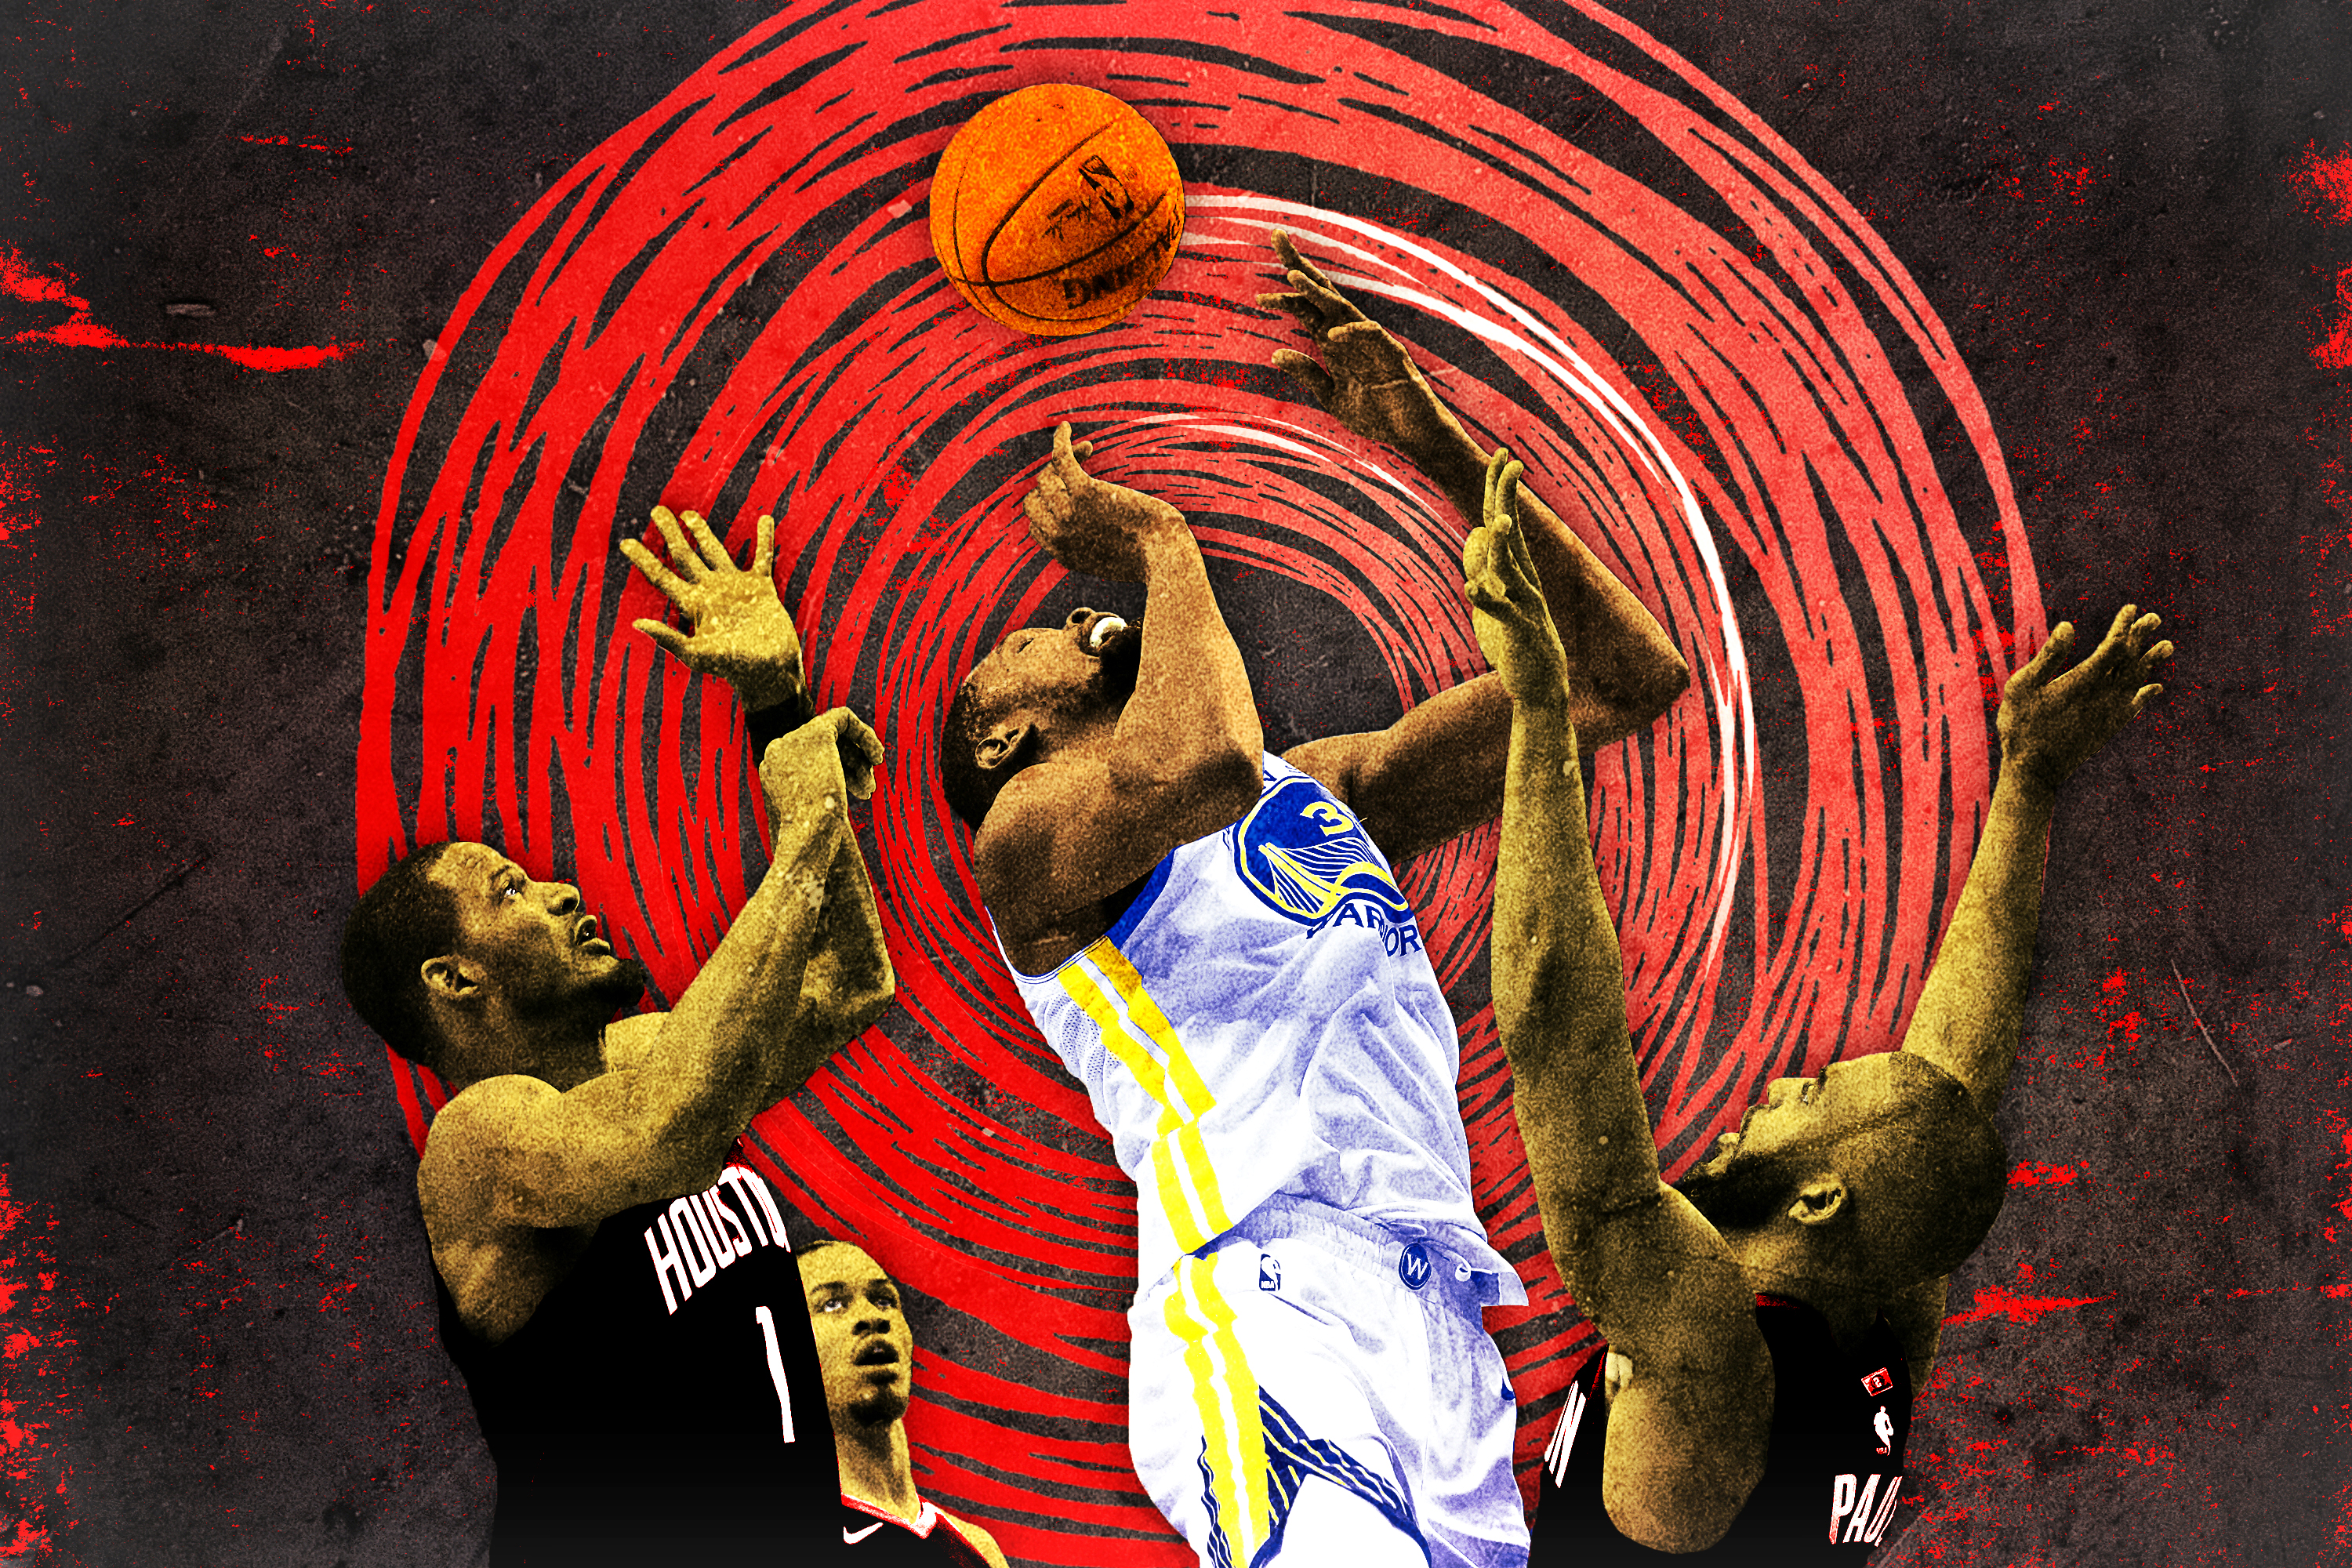 71e2a1349a57 Daryl Morey s Beautiful Dark Twisted Fantasy Comes to Life in Houston s  Statement Win